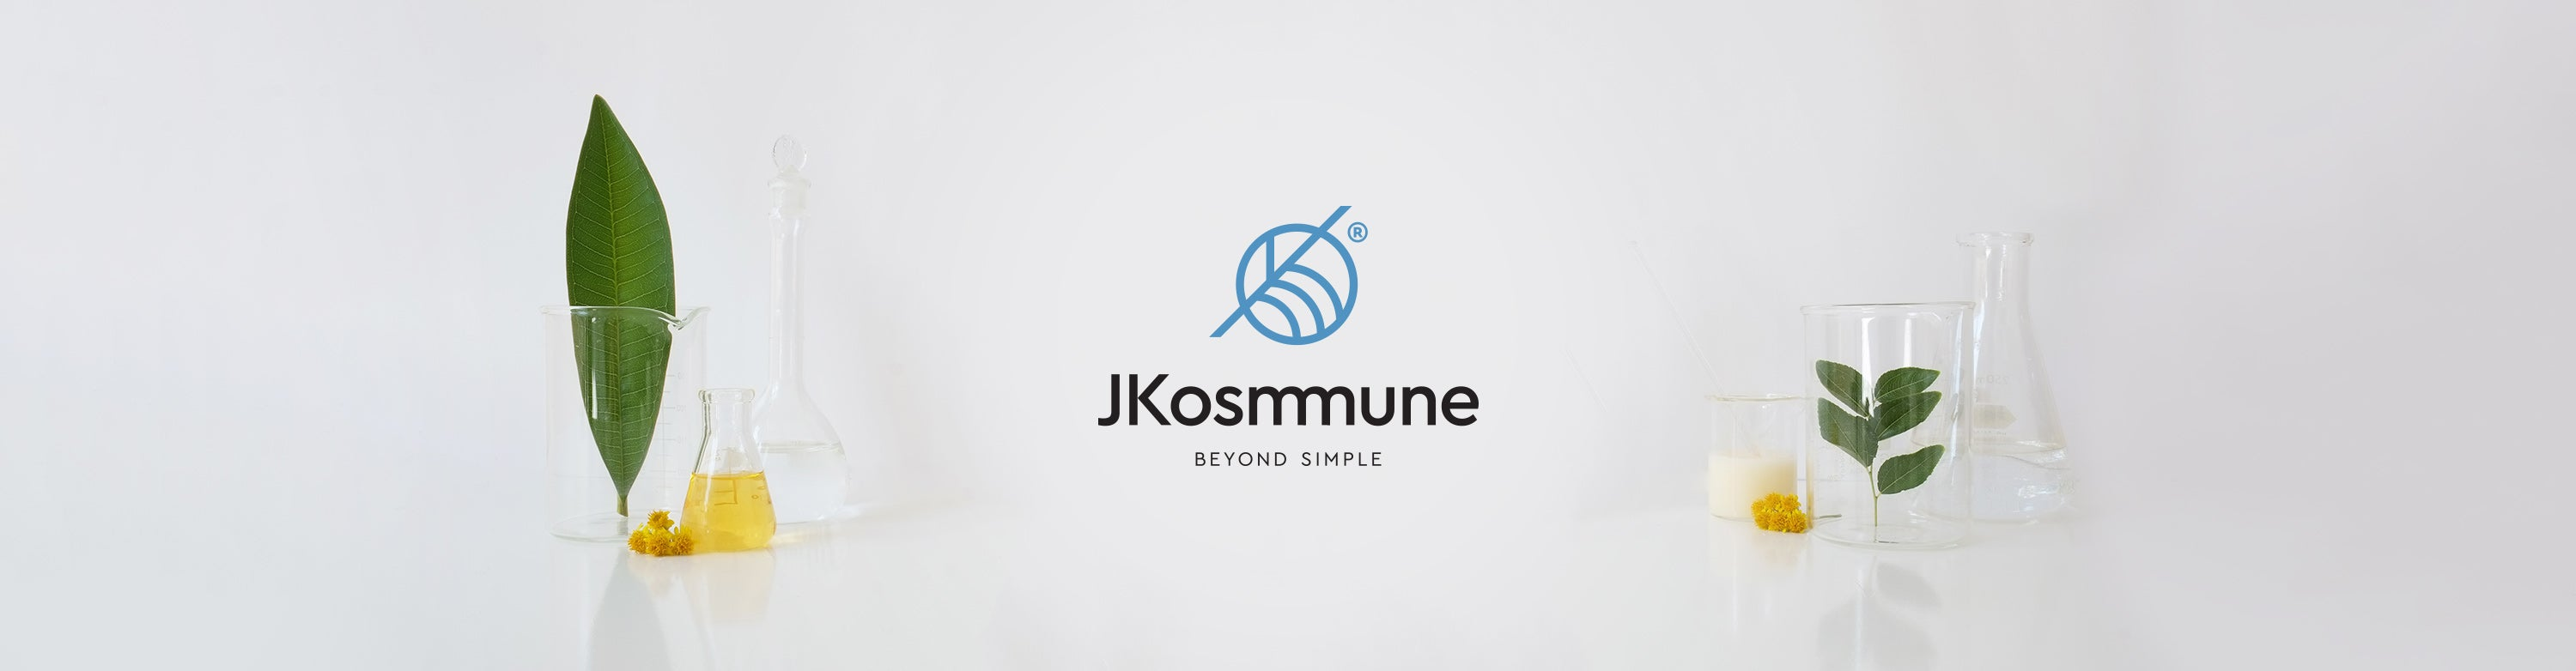 JKosmmune  beta-glucan sizofiran mushroom hydration skin care Schizophyllan